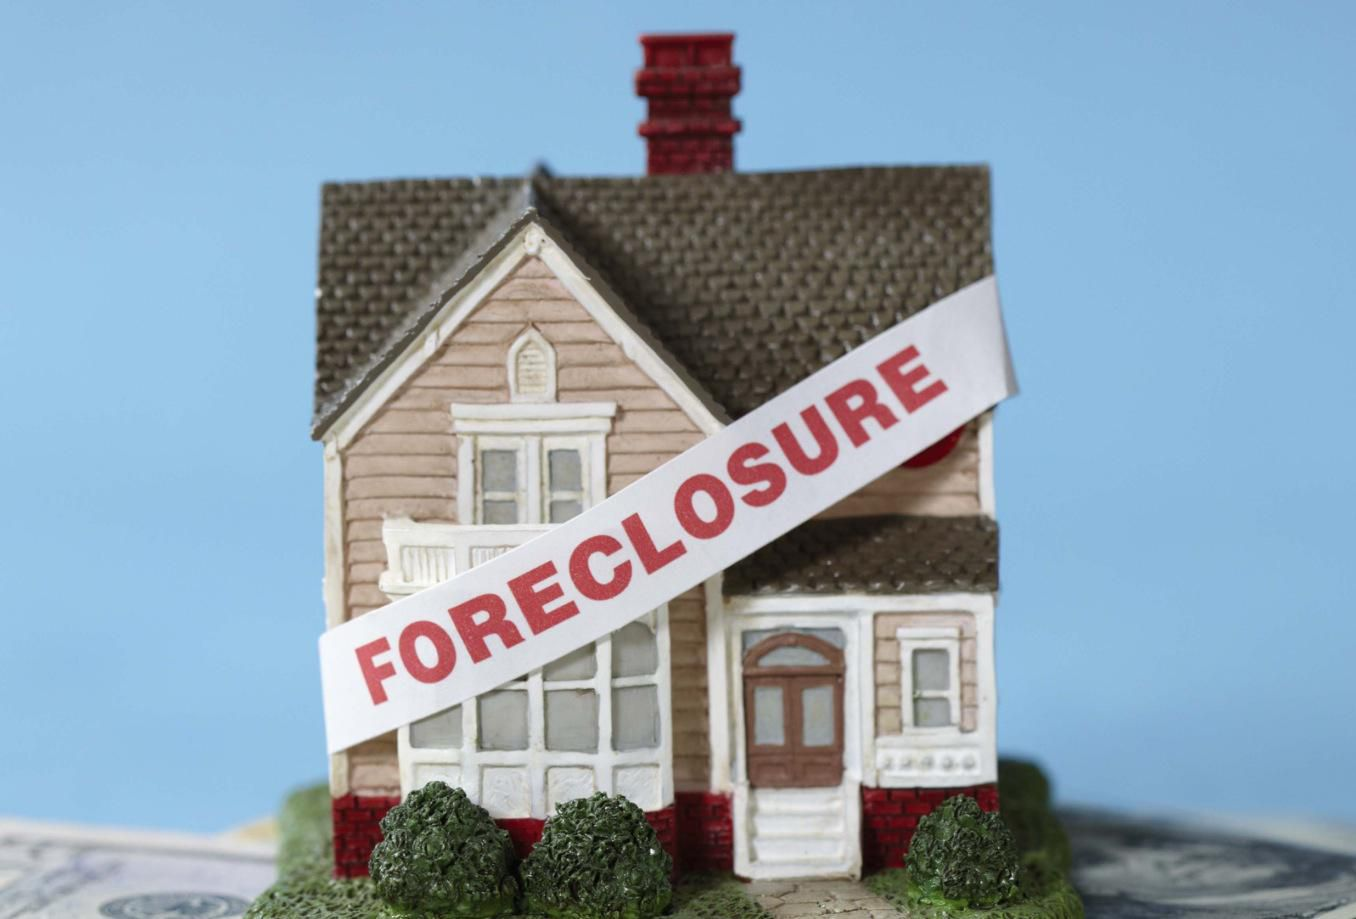 Not known Incorrect Statements About Can A Chapter 7 Bankruptcy Stop Foreclosure? Or Should I ...